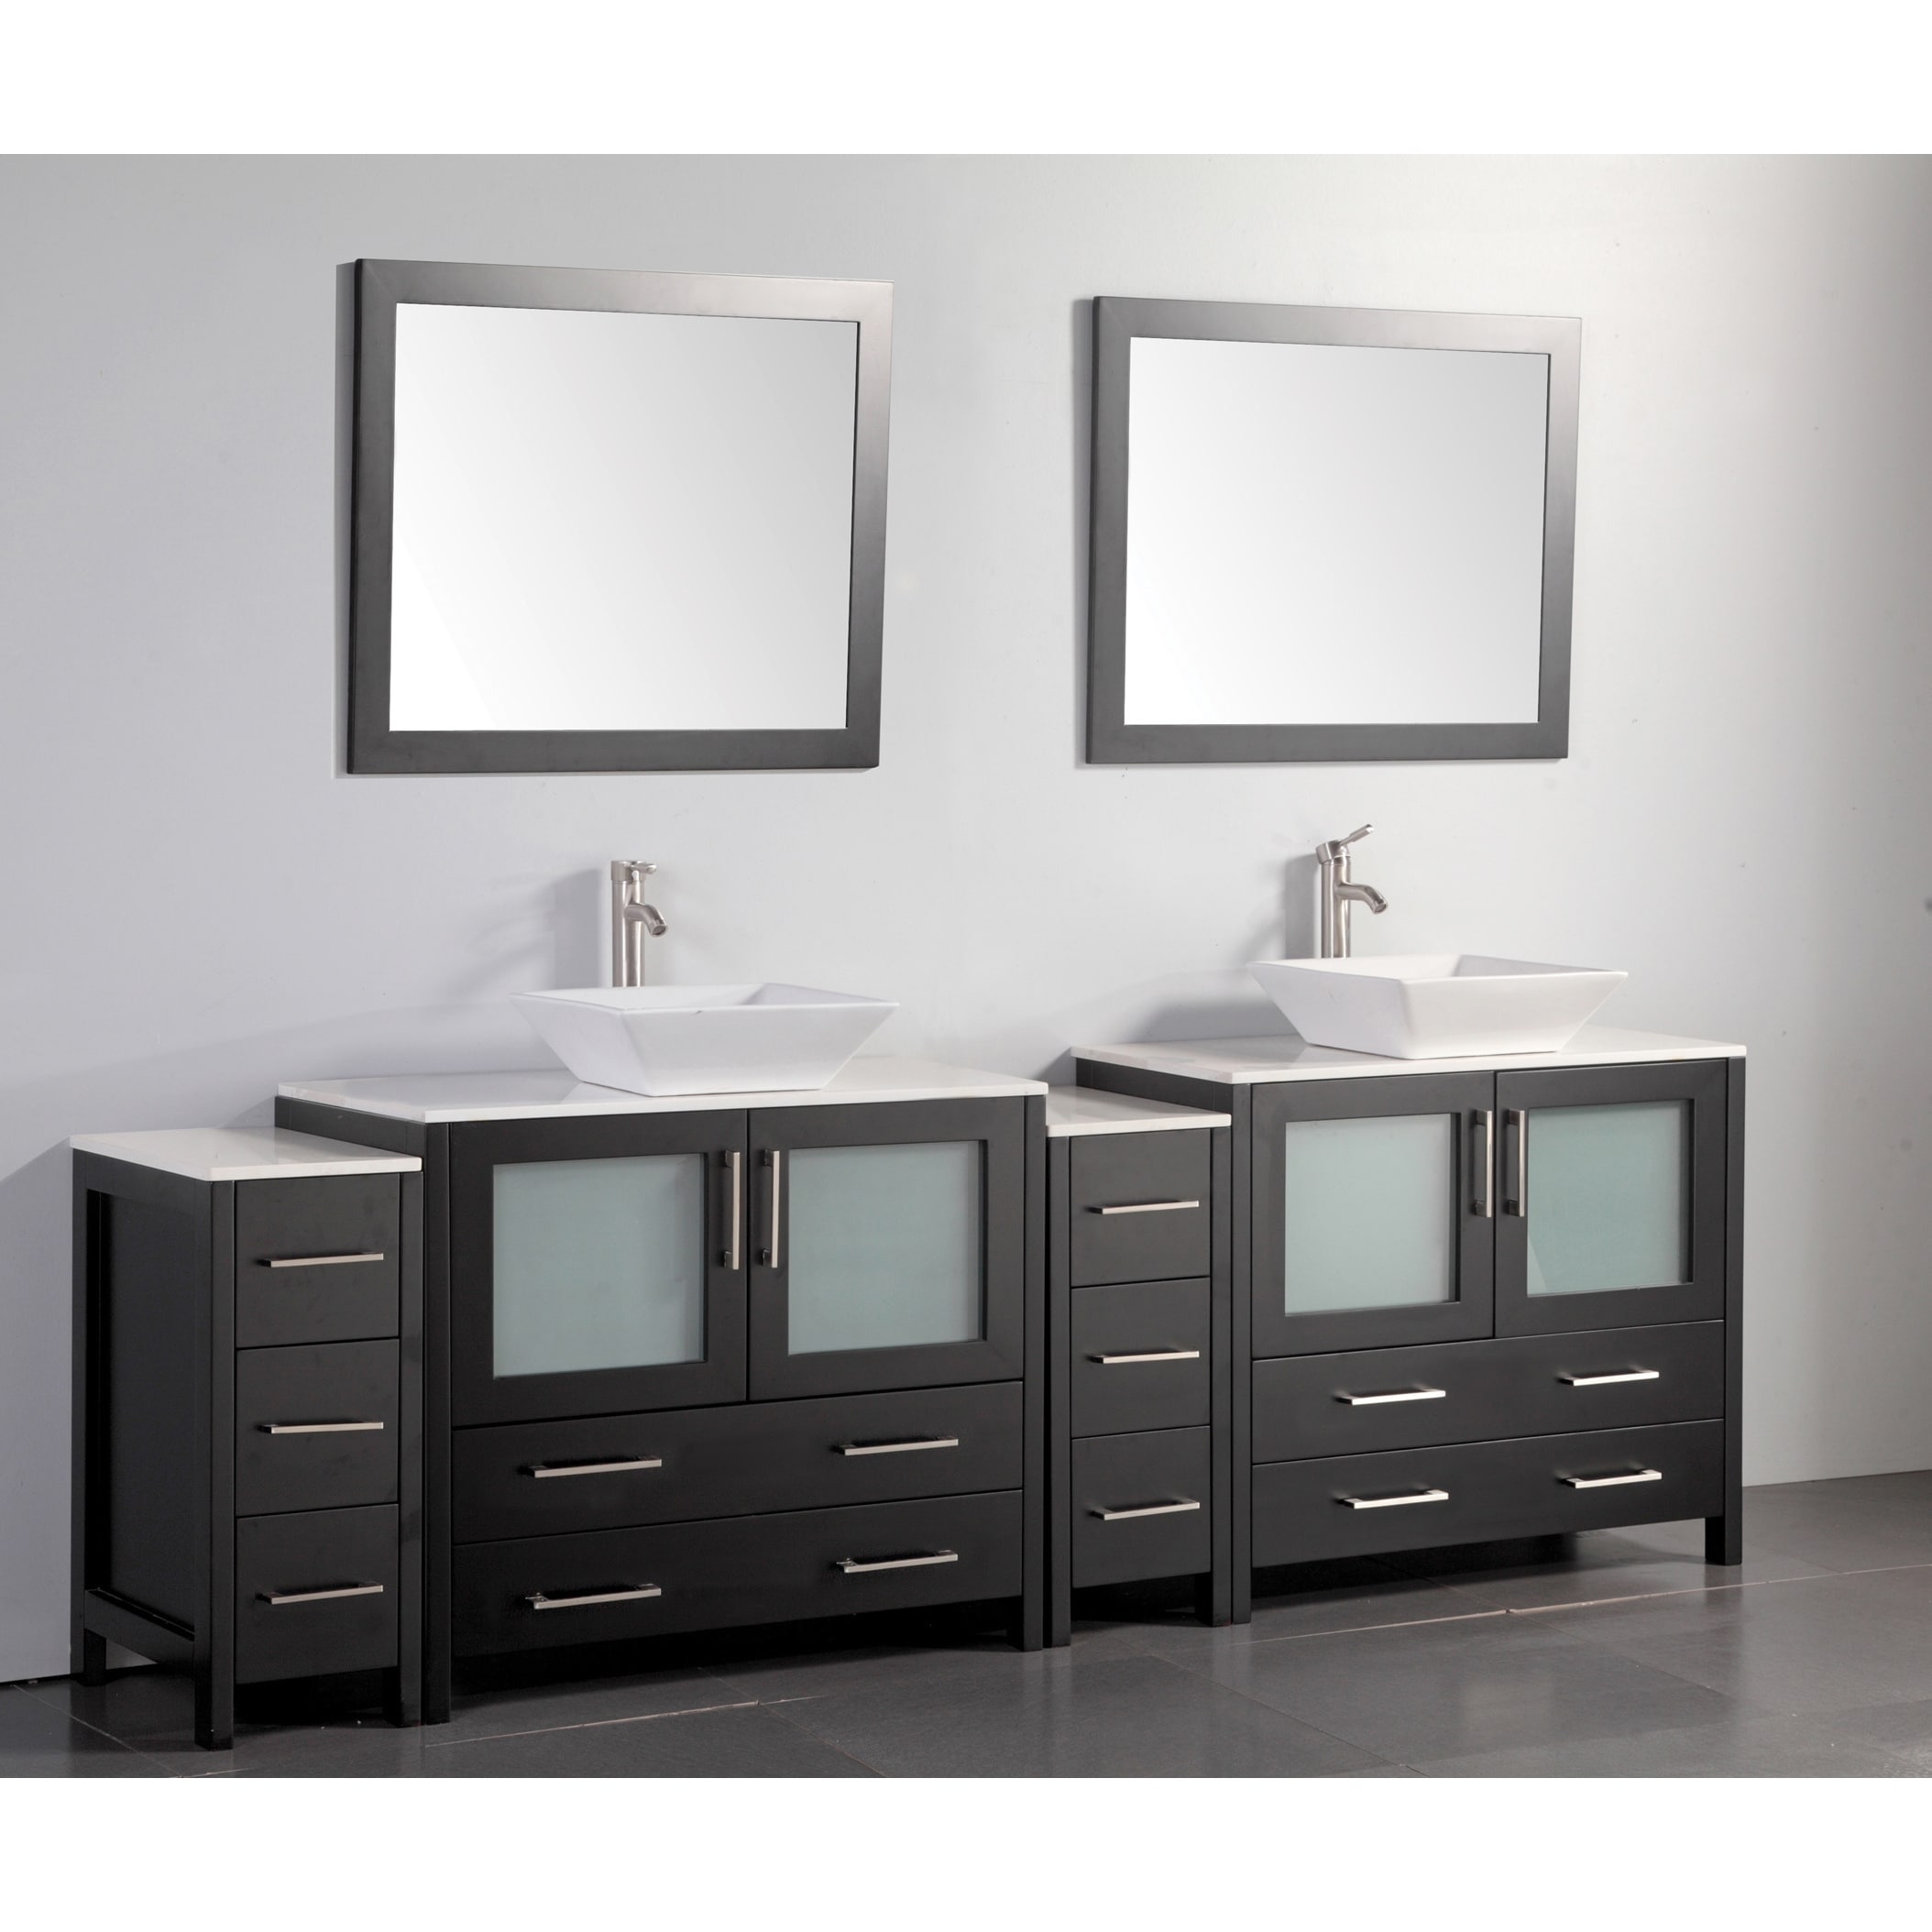 96 inches bathroom vanity cabinets | compare prices at nextag